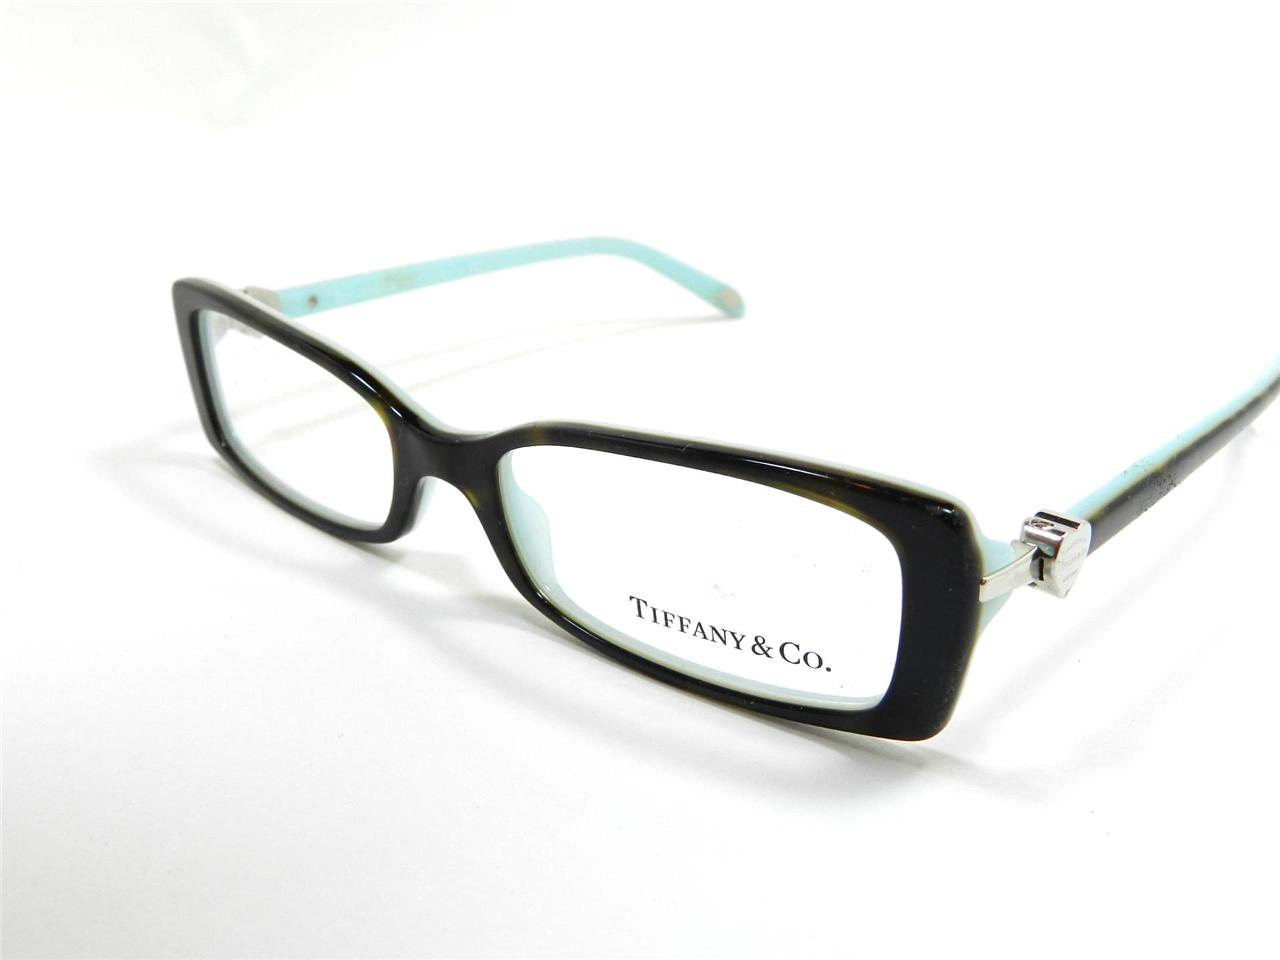 TIFFANY & CO. EYEGLASSES 2035 8134 OPTICAL FRAME NEW AUTHENTIC | eBay